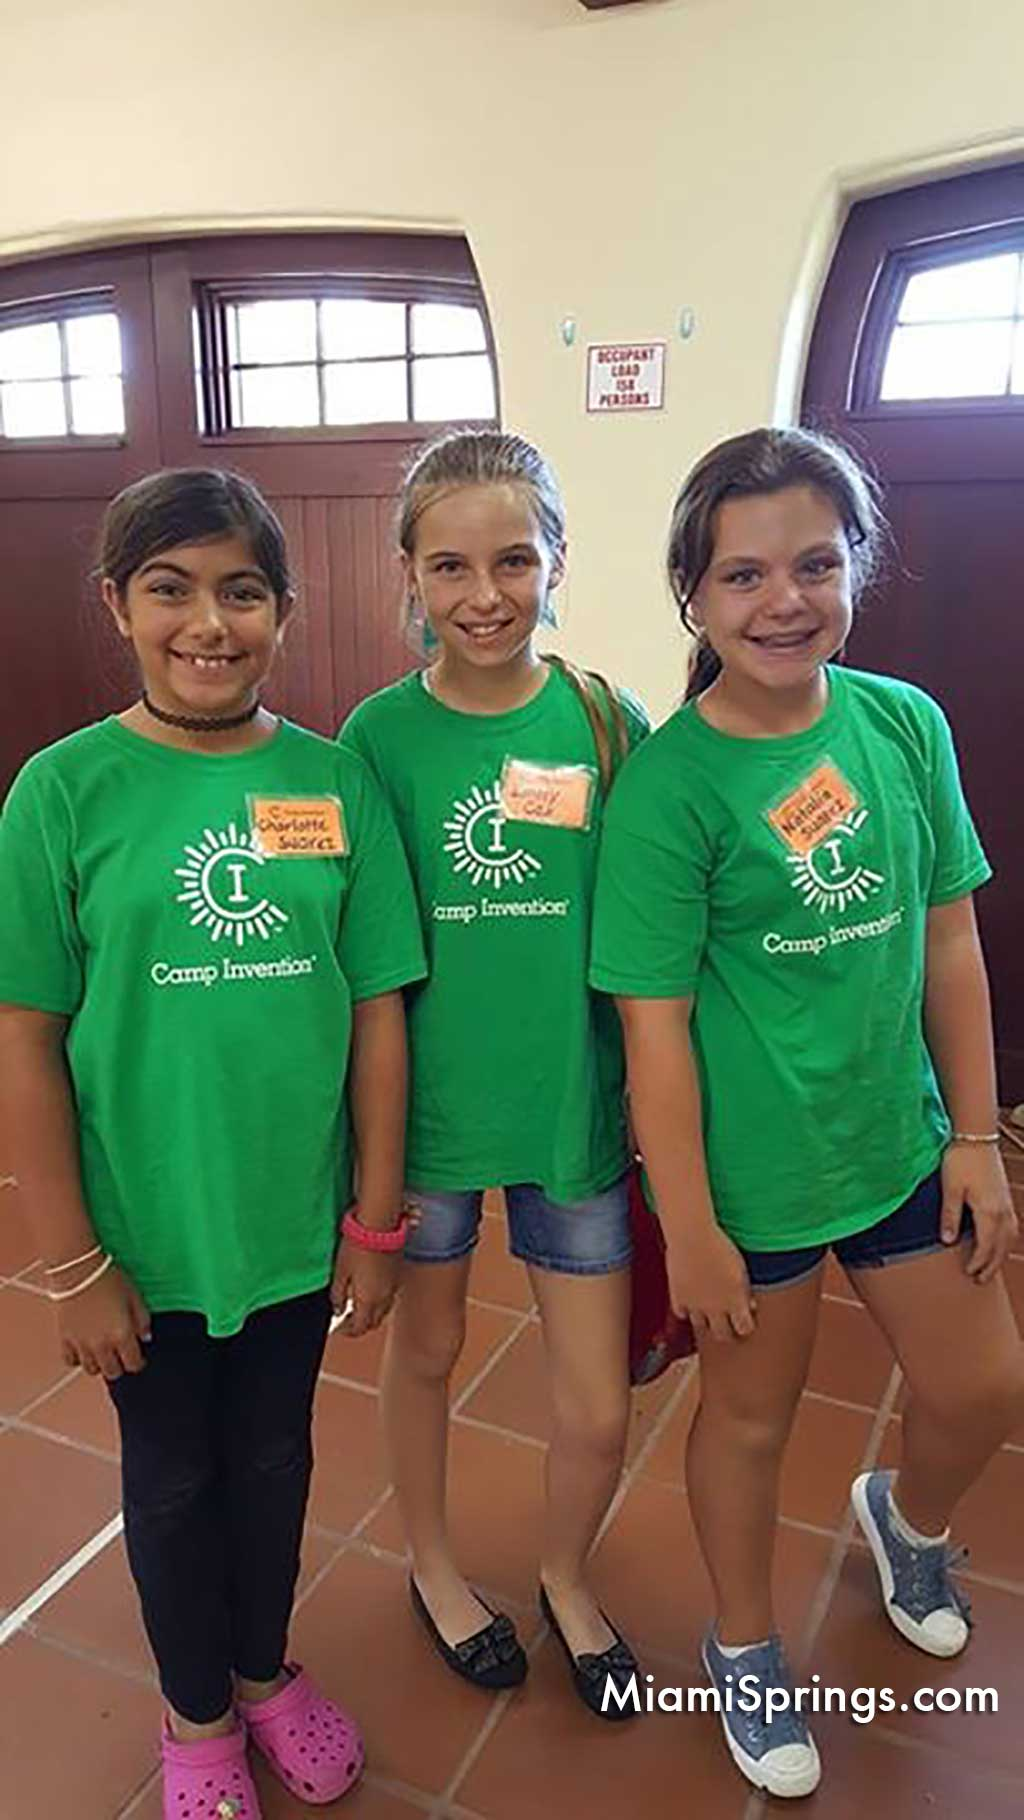 Camp Invention at Curtiss Parkway